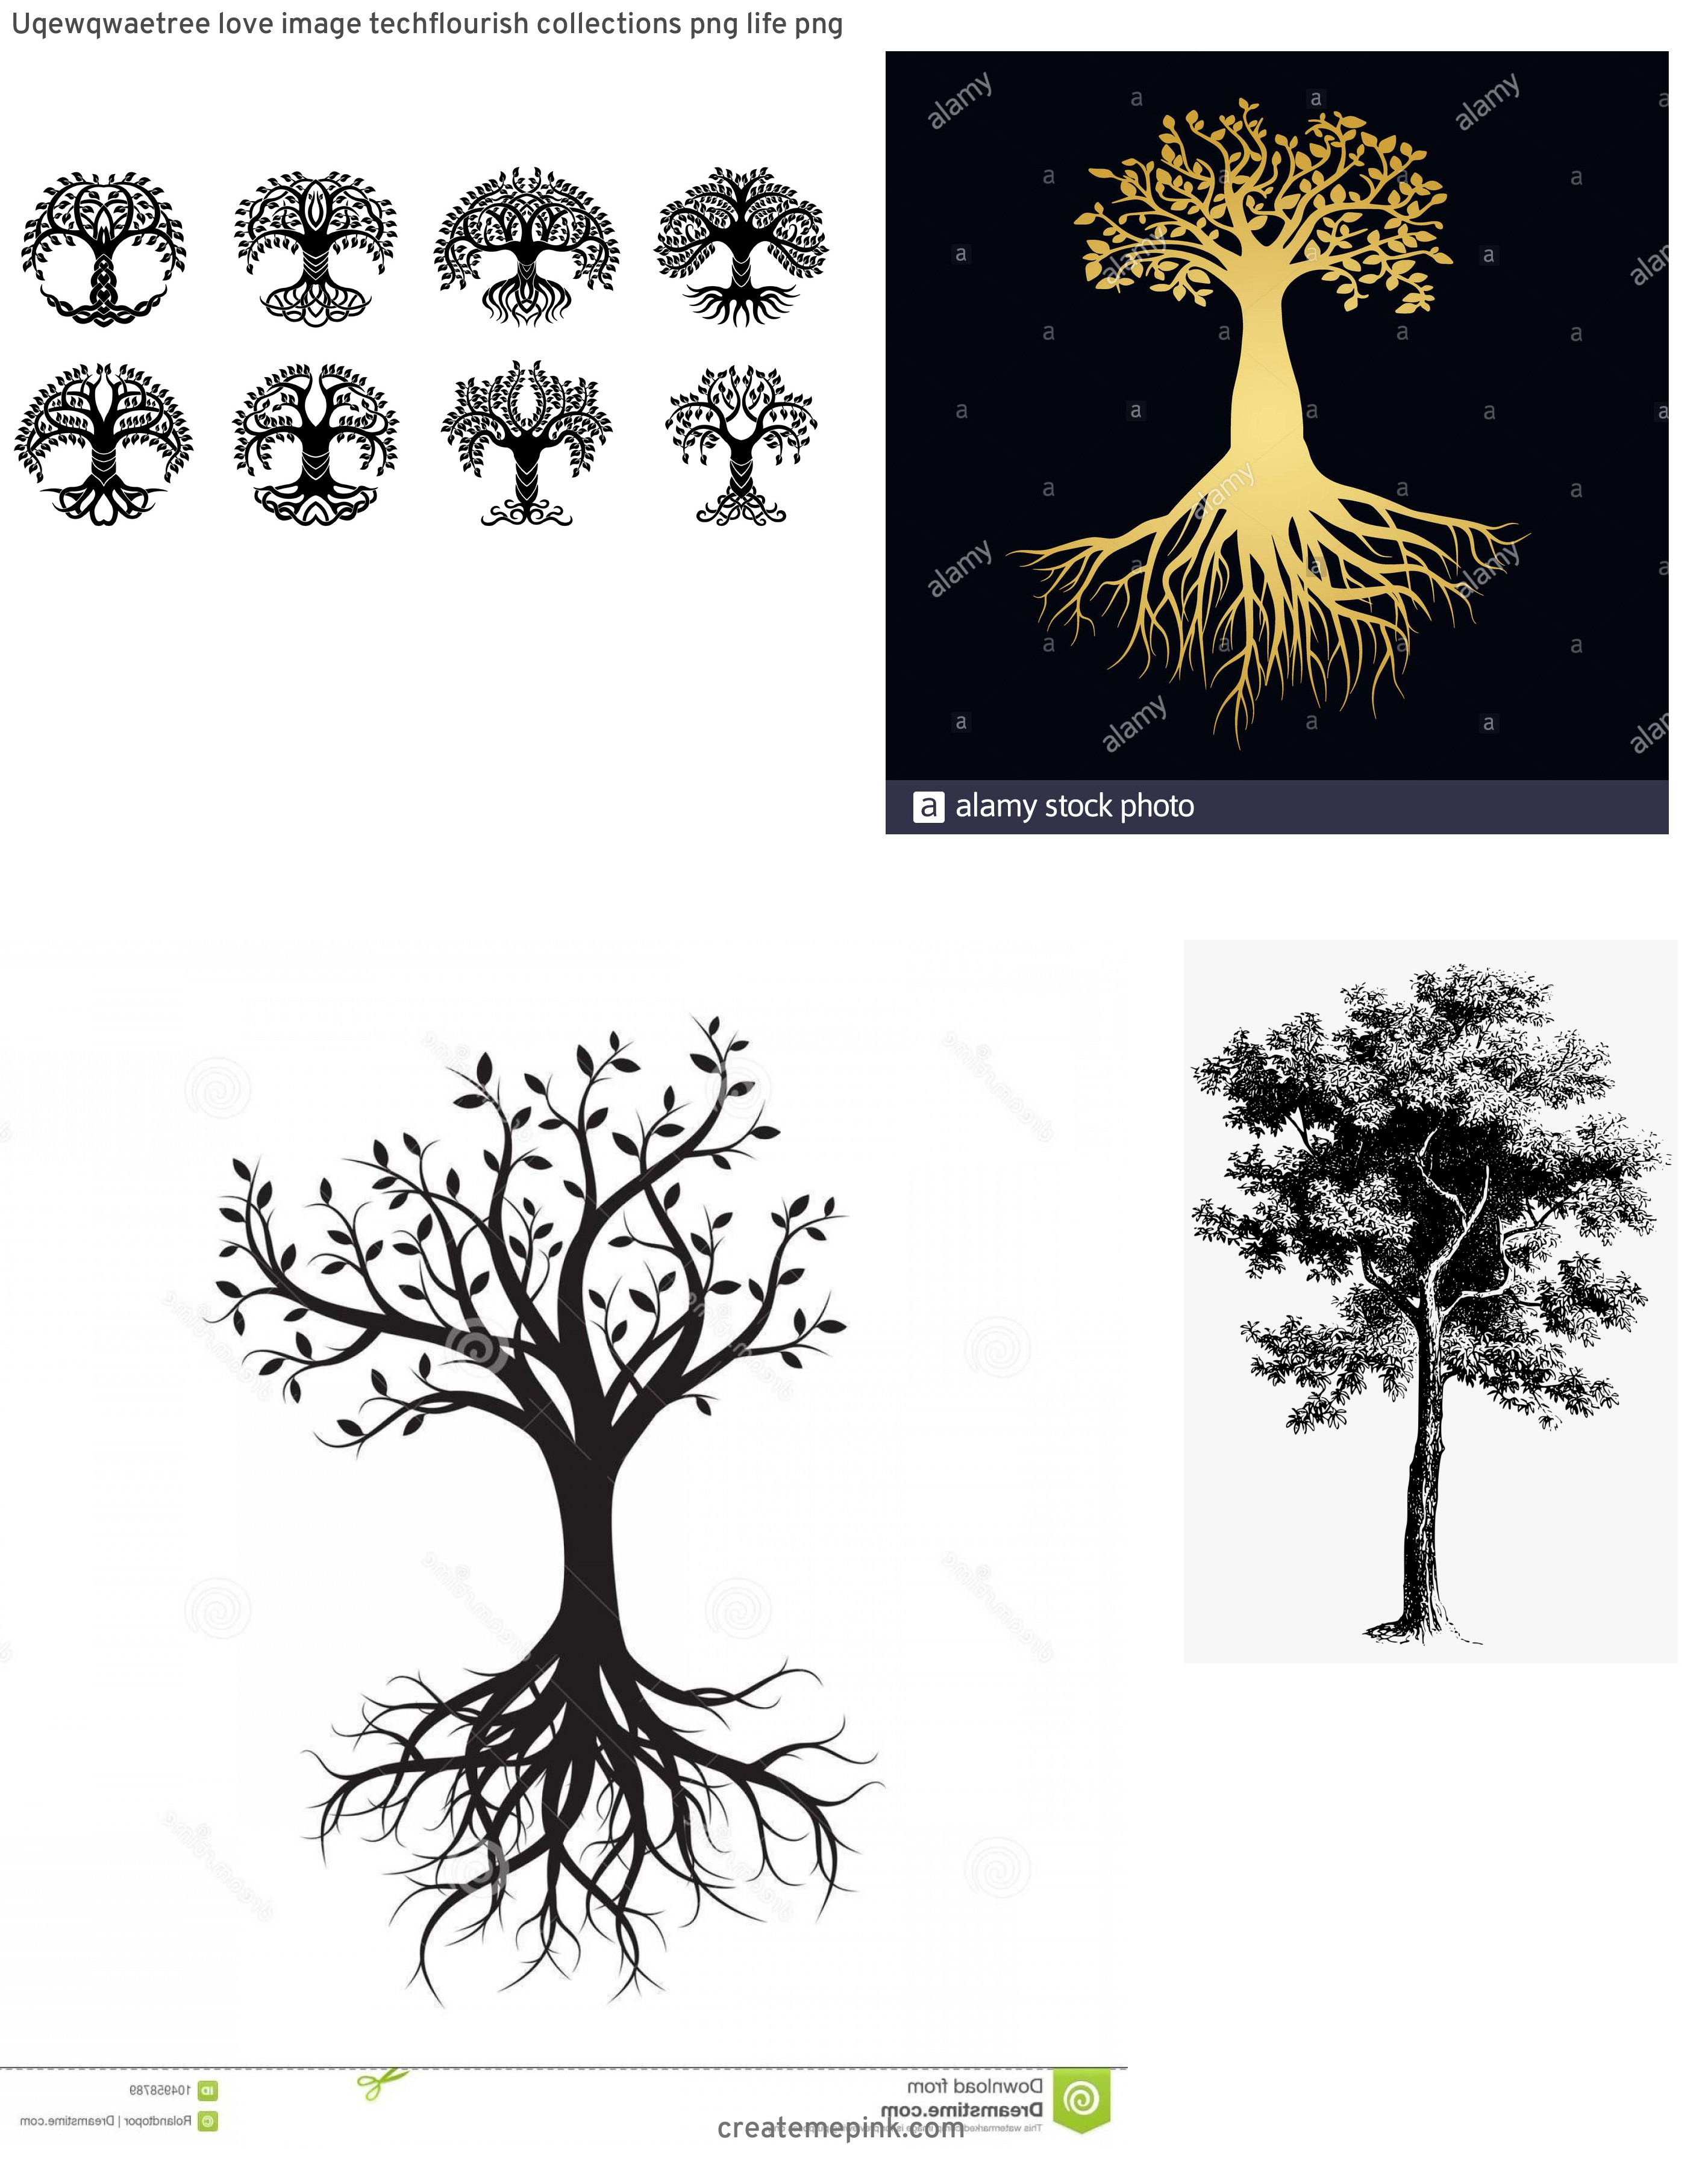 Vector Images Black Tree Of Life: Uqewqwaetree Love Image Techflourish Collections Png Life Png